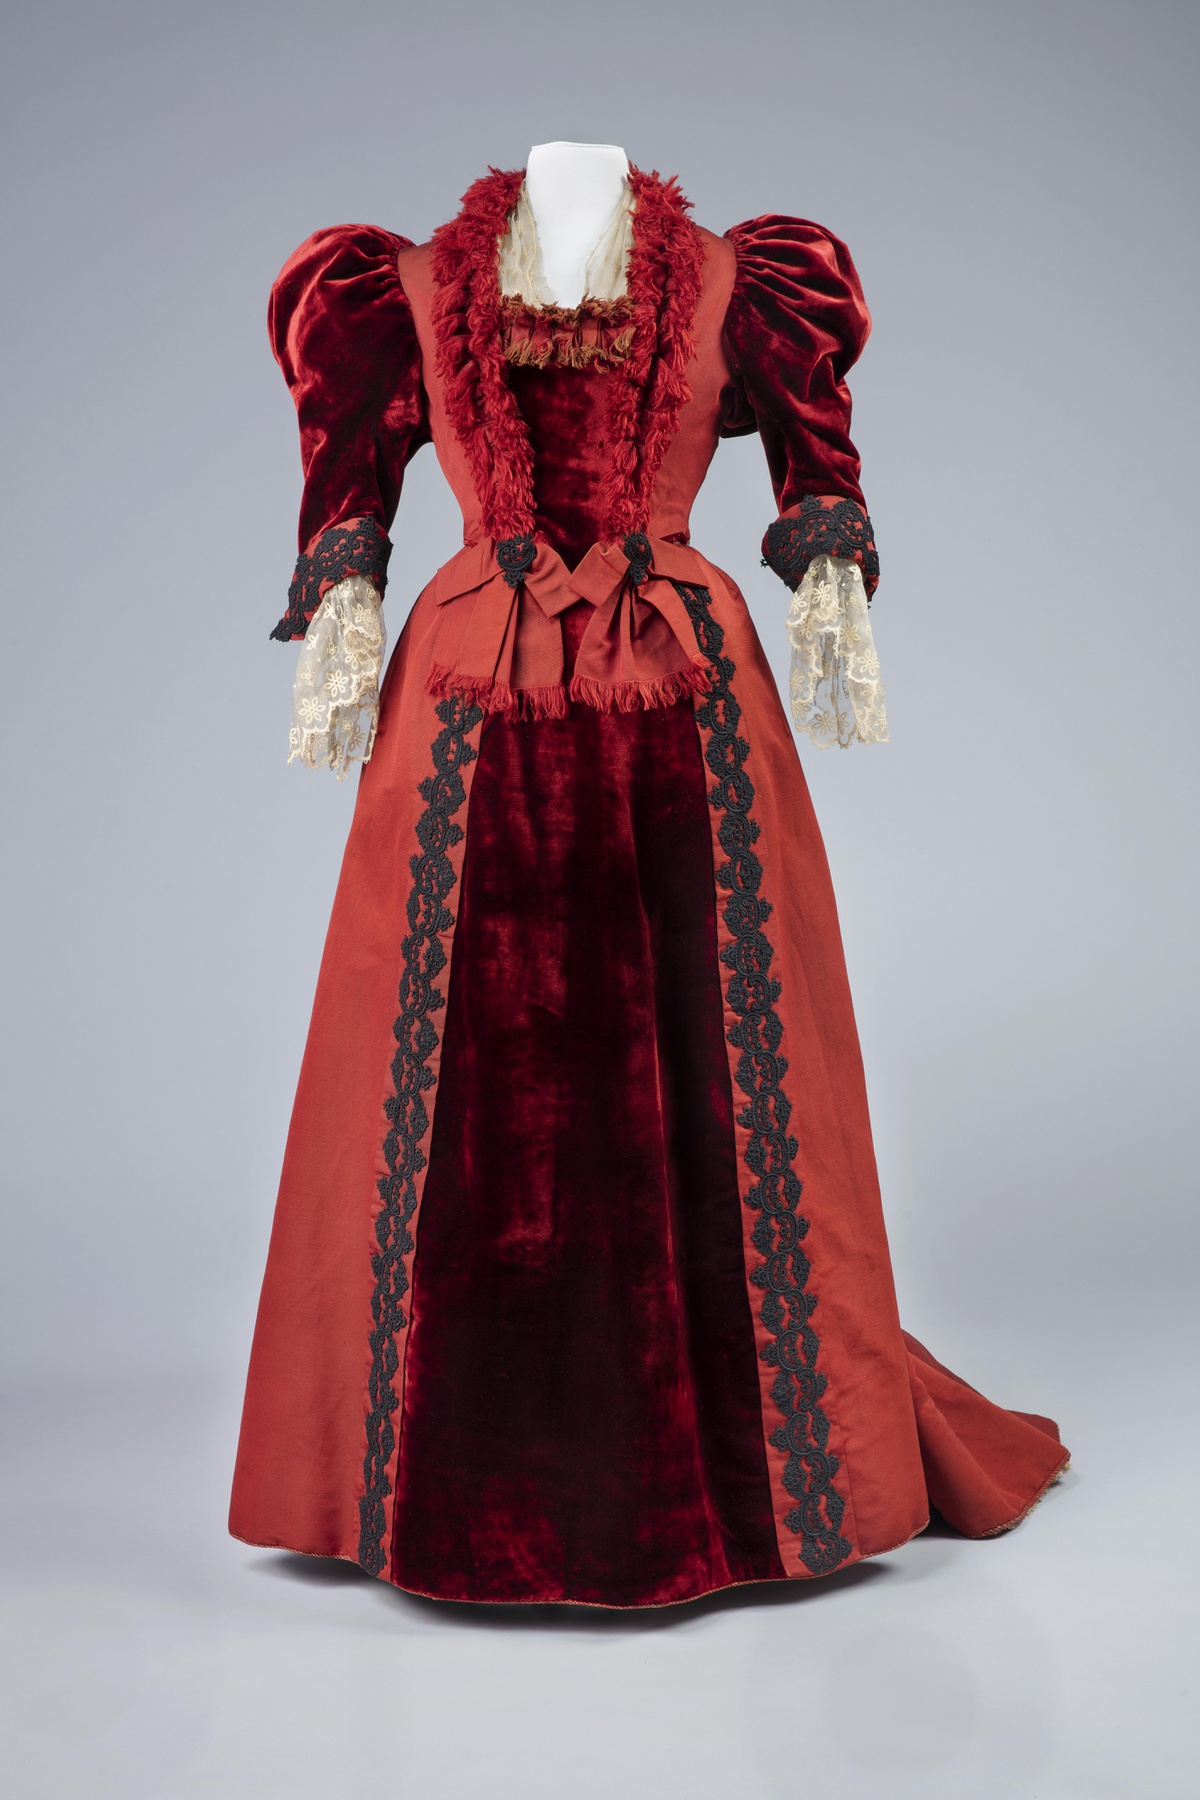 A mid 1890s dress in red silk and red silk velvet, with puffed sleeves, Dress in two parts, 1896, silk, lace and passiamentary, 10592:001-002 Centraal Museum Utrecht